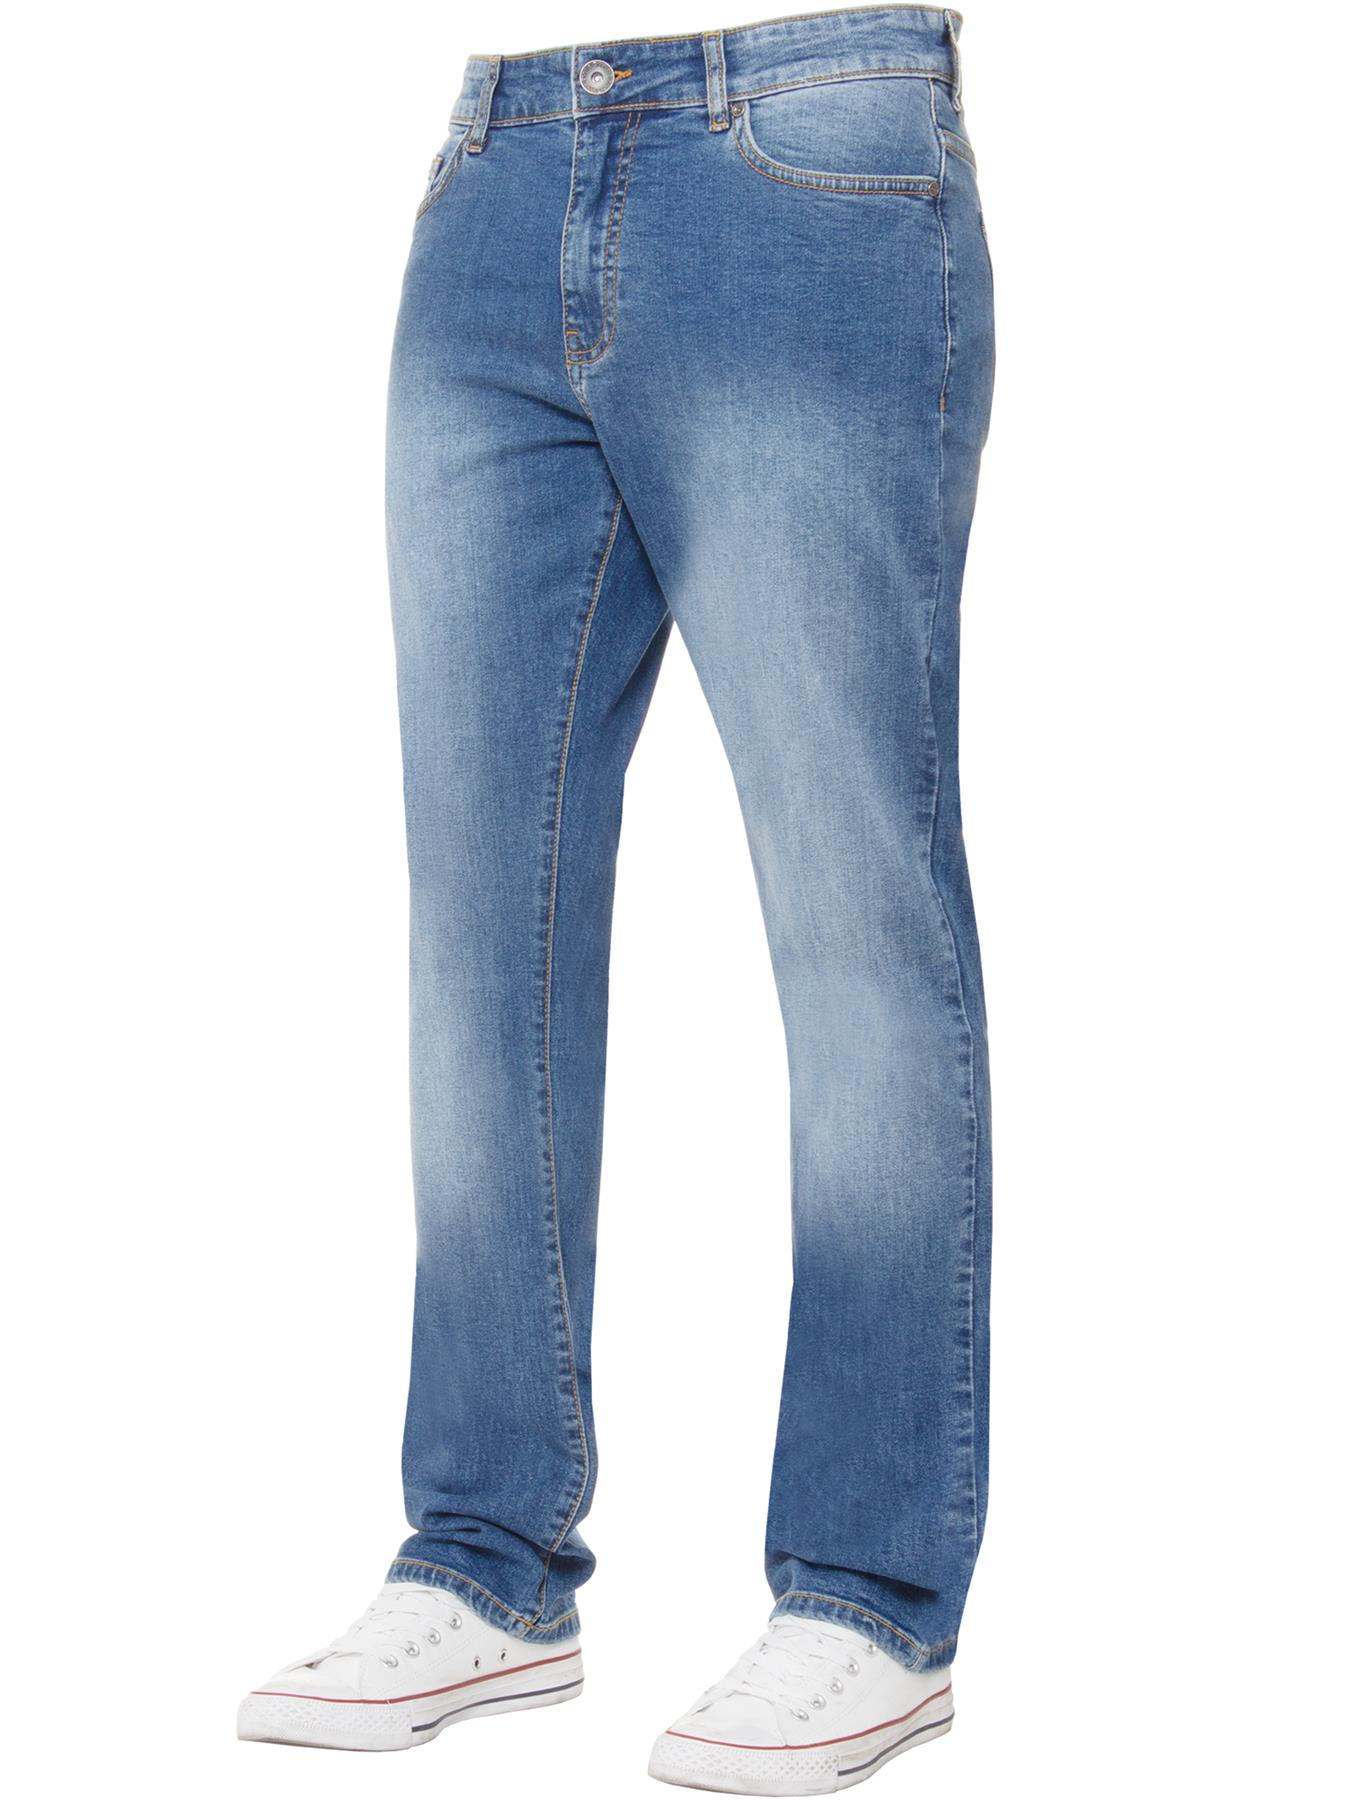 Kruze-Mens-Basic-Straight-Leg-Bootcut-Stretch-Jeans-Denim-Regular-Big-Tall-Waist thumbnail 18